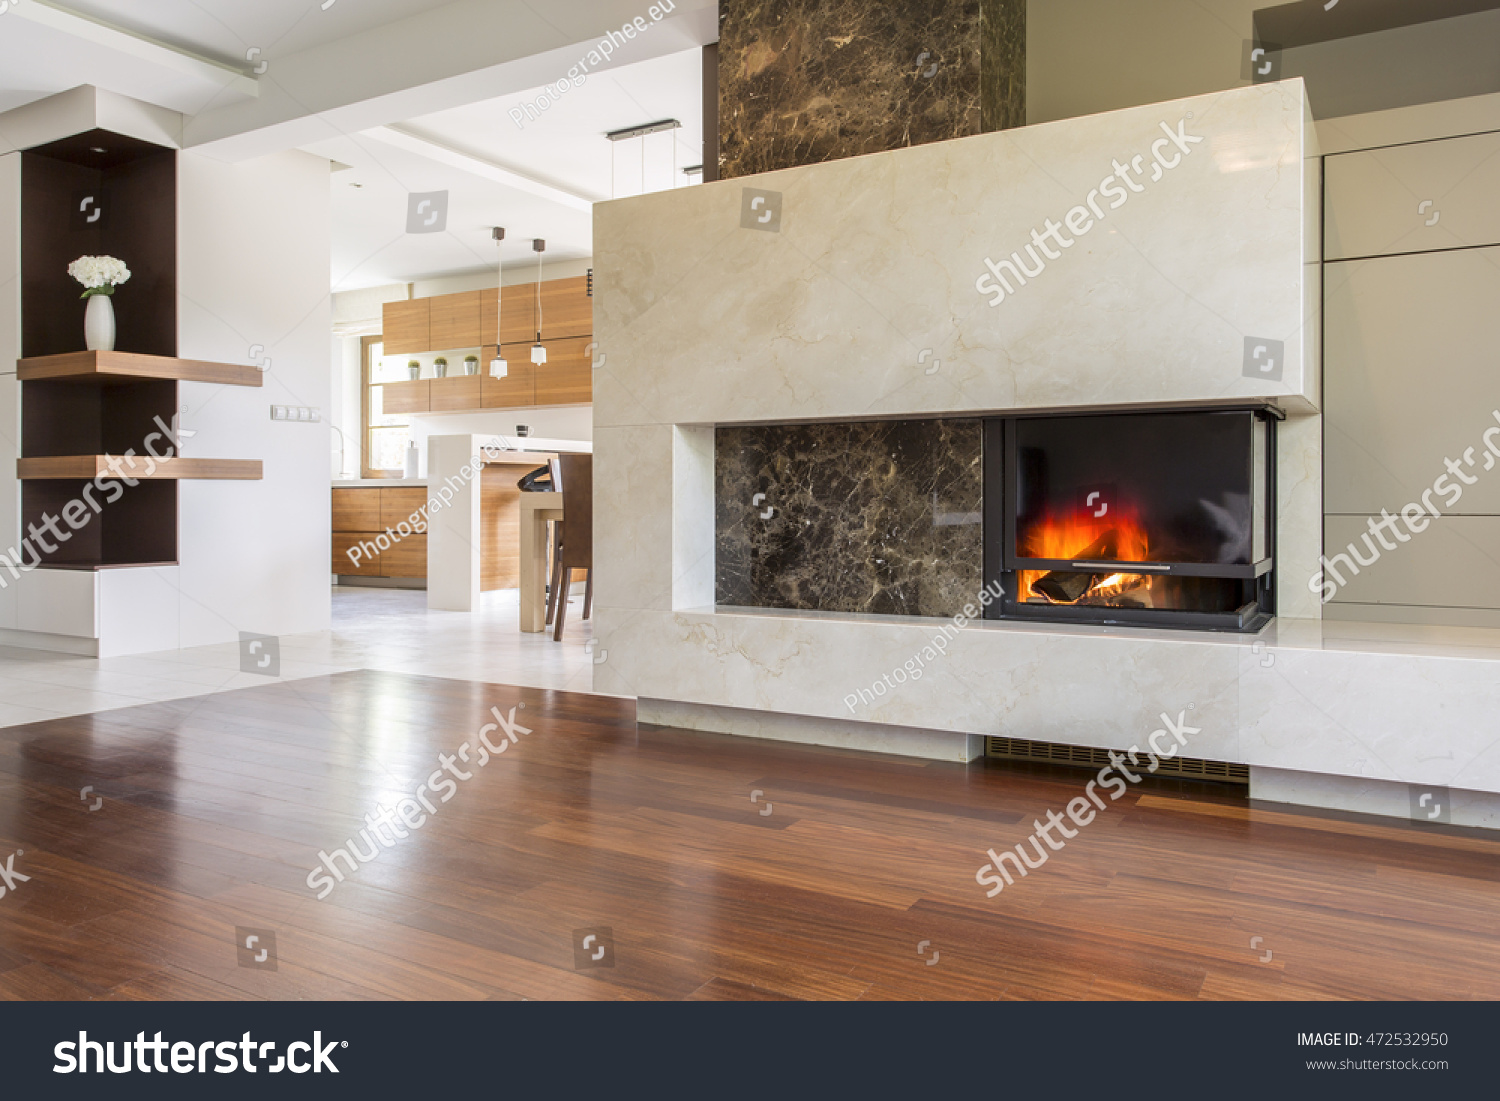 Marble Fireplace Vast Living Room Panelled Stock Photo Edit Now 472532950